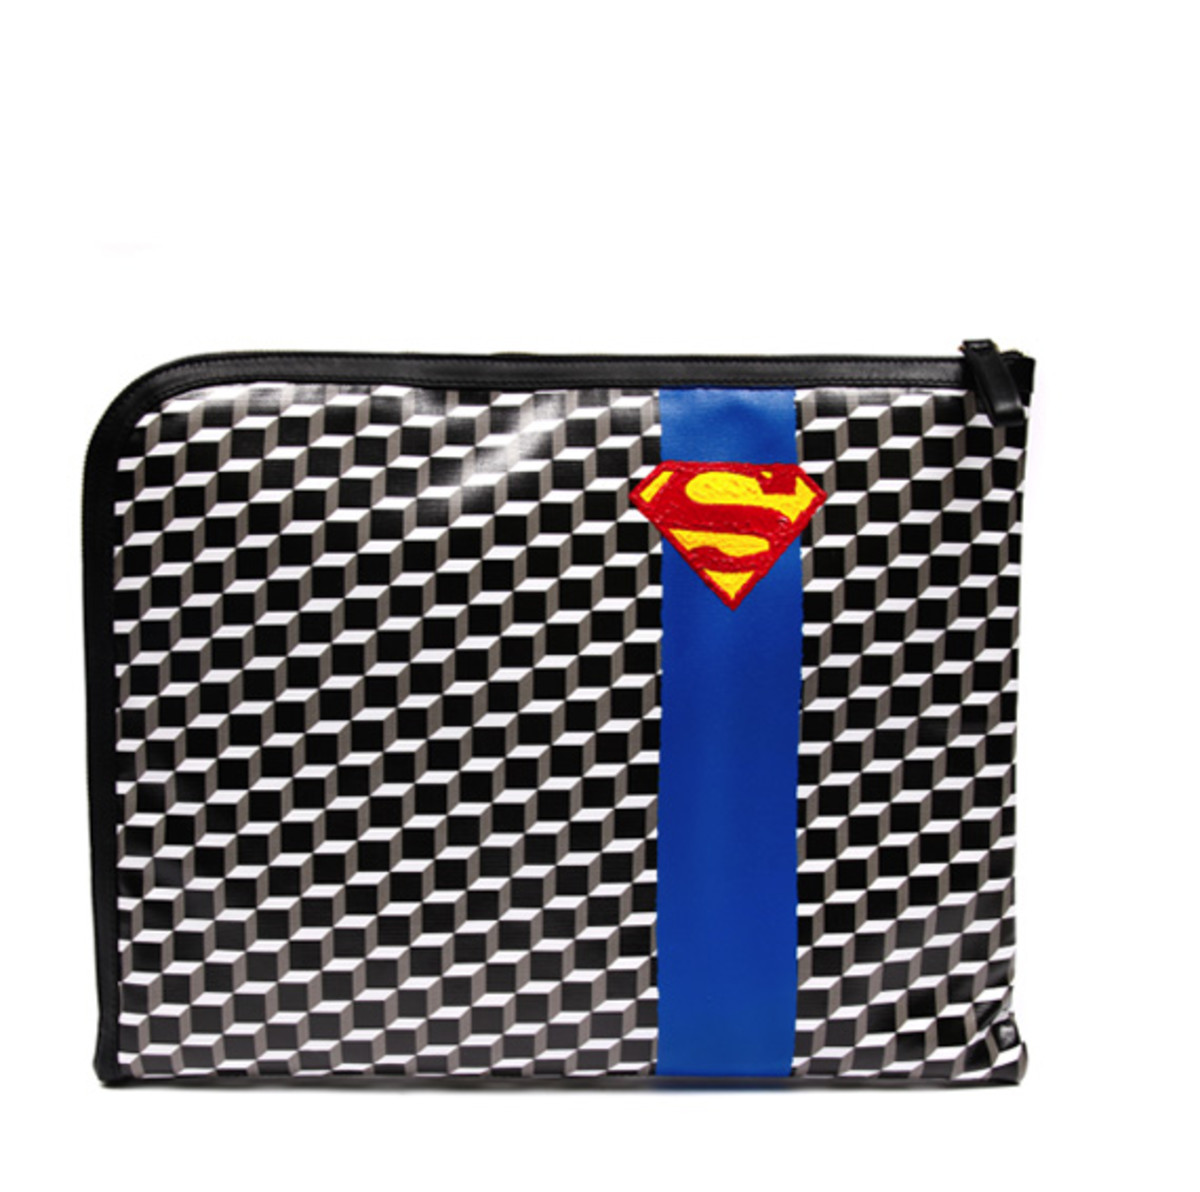 dc-comic-pierre-hardy-briefcase-04